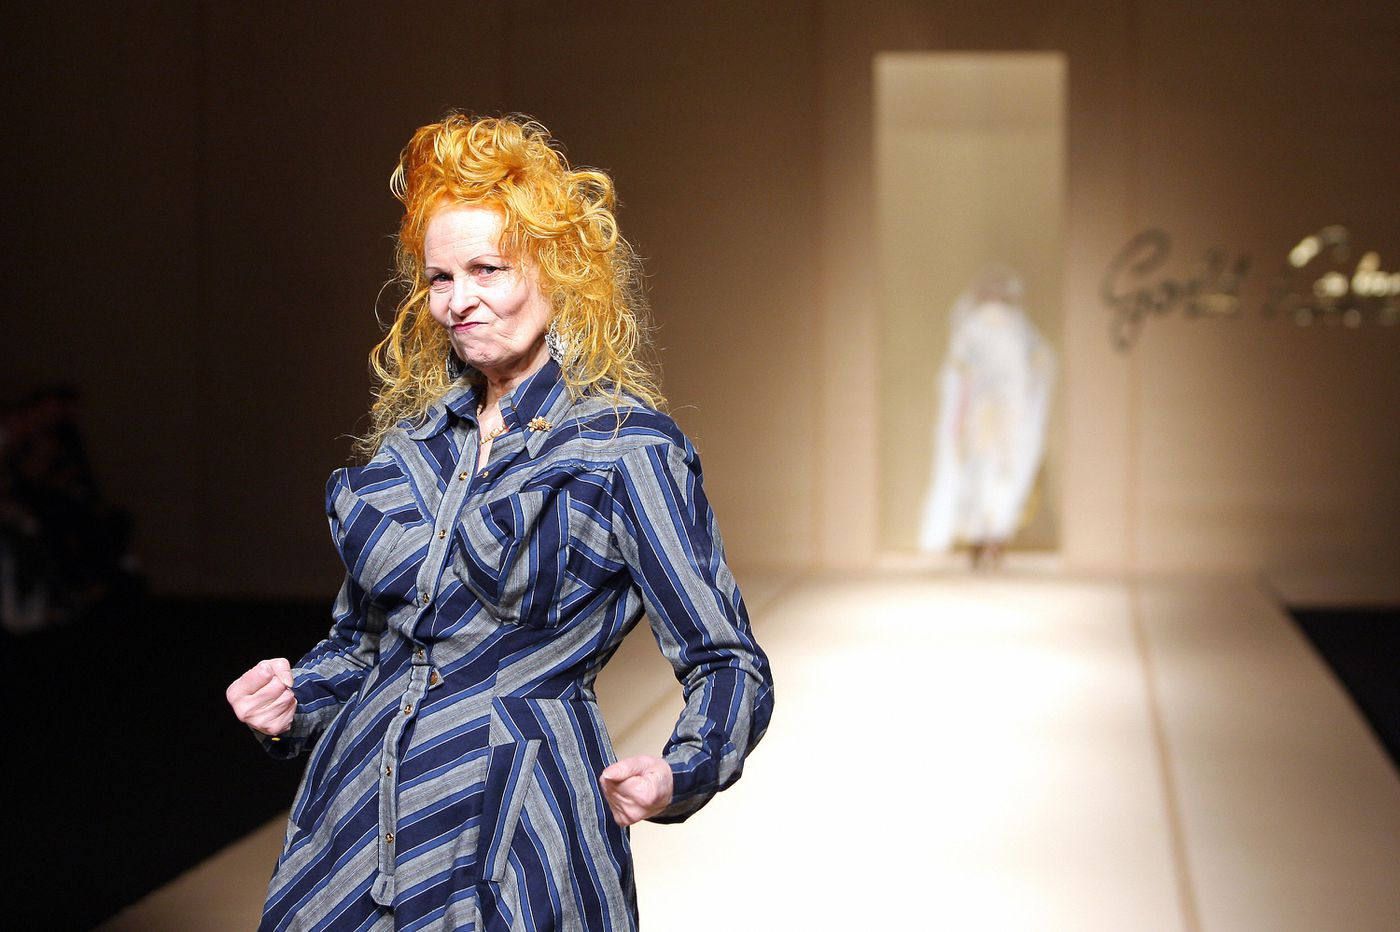 This Vivienne Westwood documentary details how the designer built a killer brand on her own potty-mouthed terms